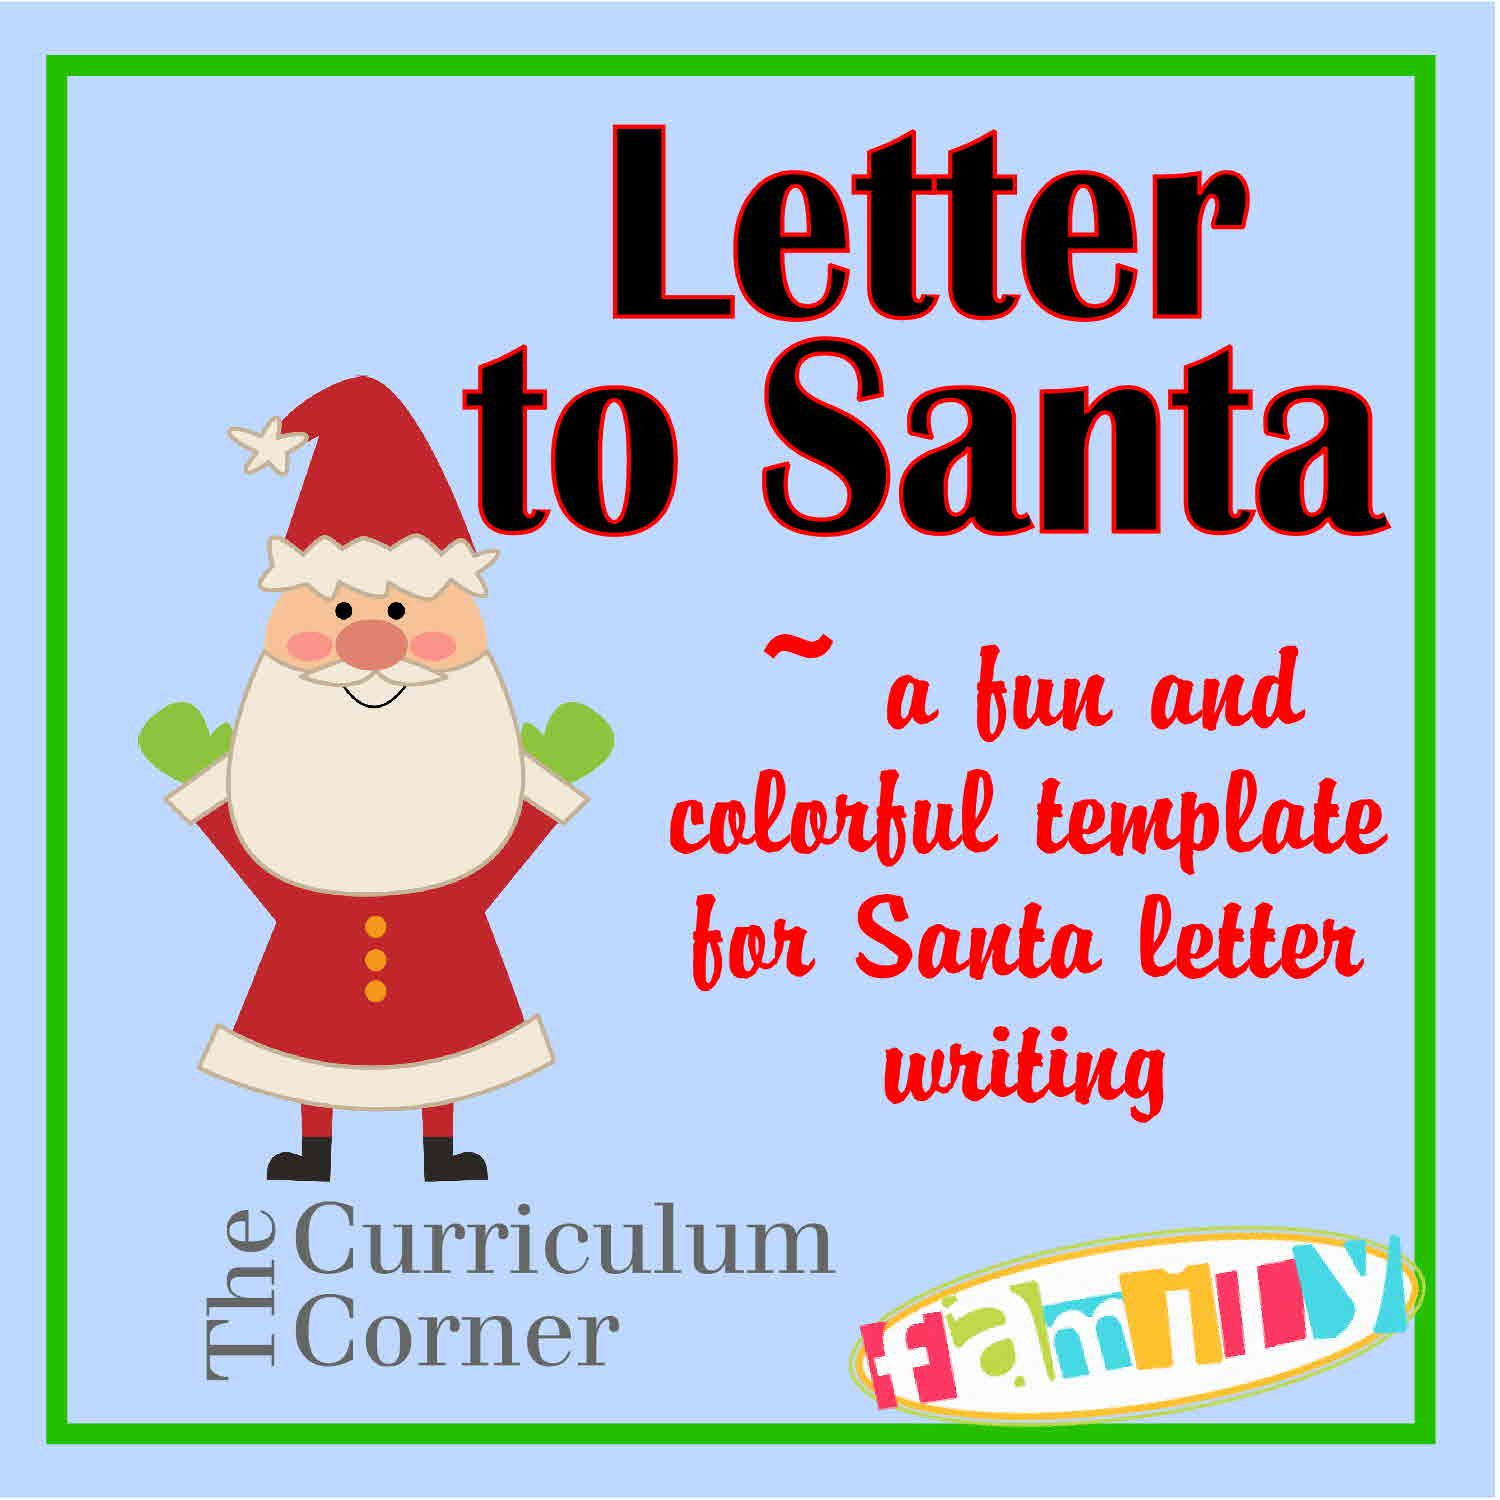 Printable letter from santa free printable letter templates blank letter to santa christmas printables santa letter spiritdancerdesigns Choice Image